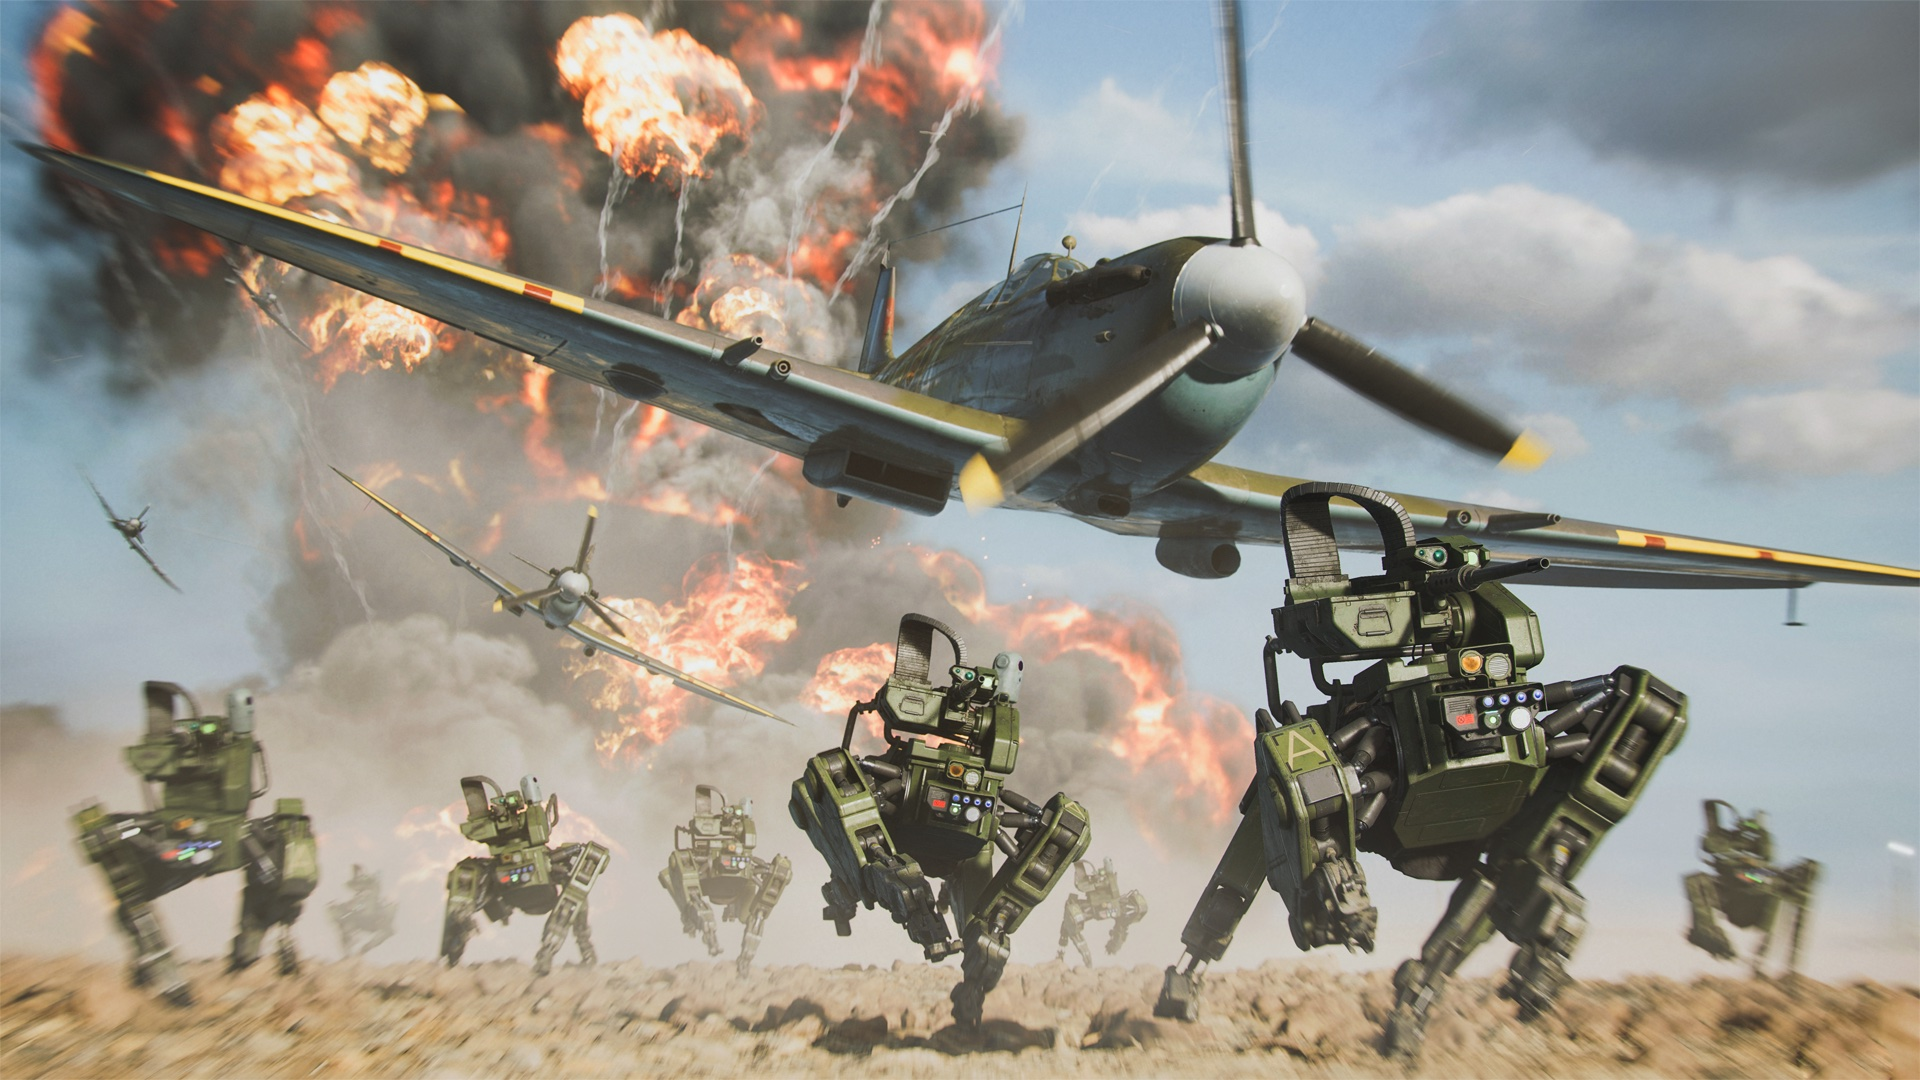 A WWII squadron bombs quadrupedal drones in a screenshot from Battlefield Portal